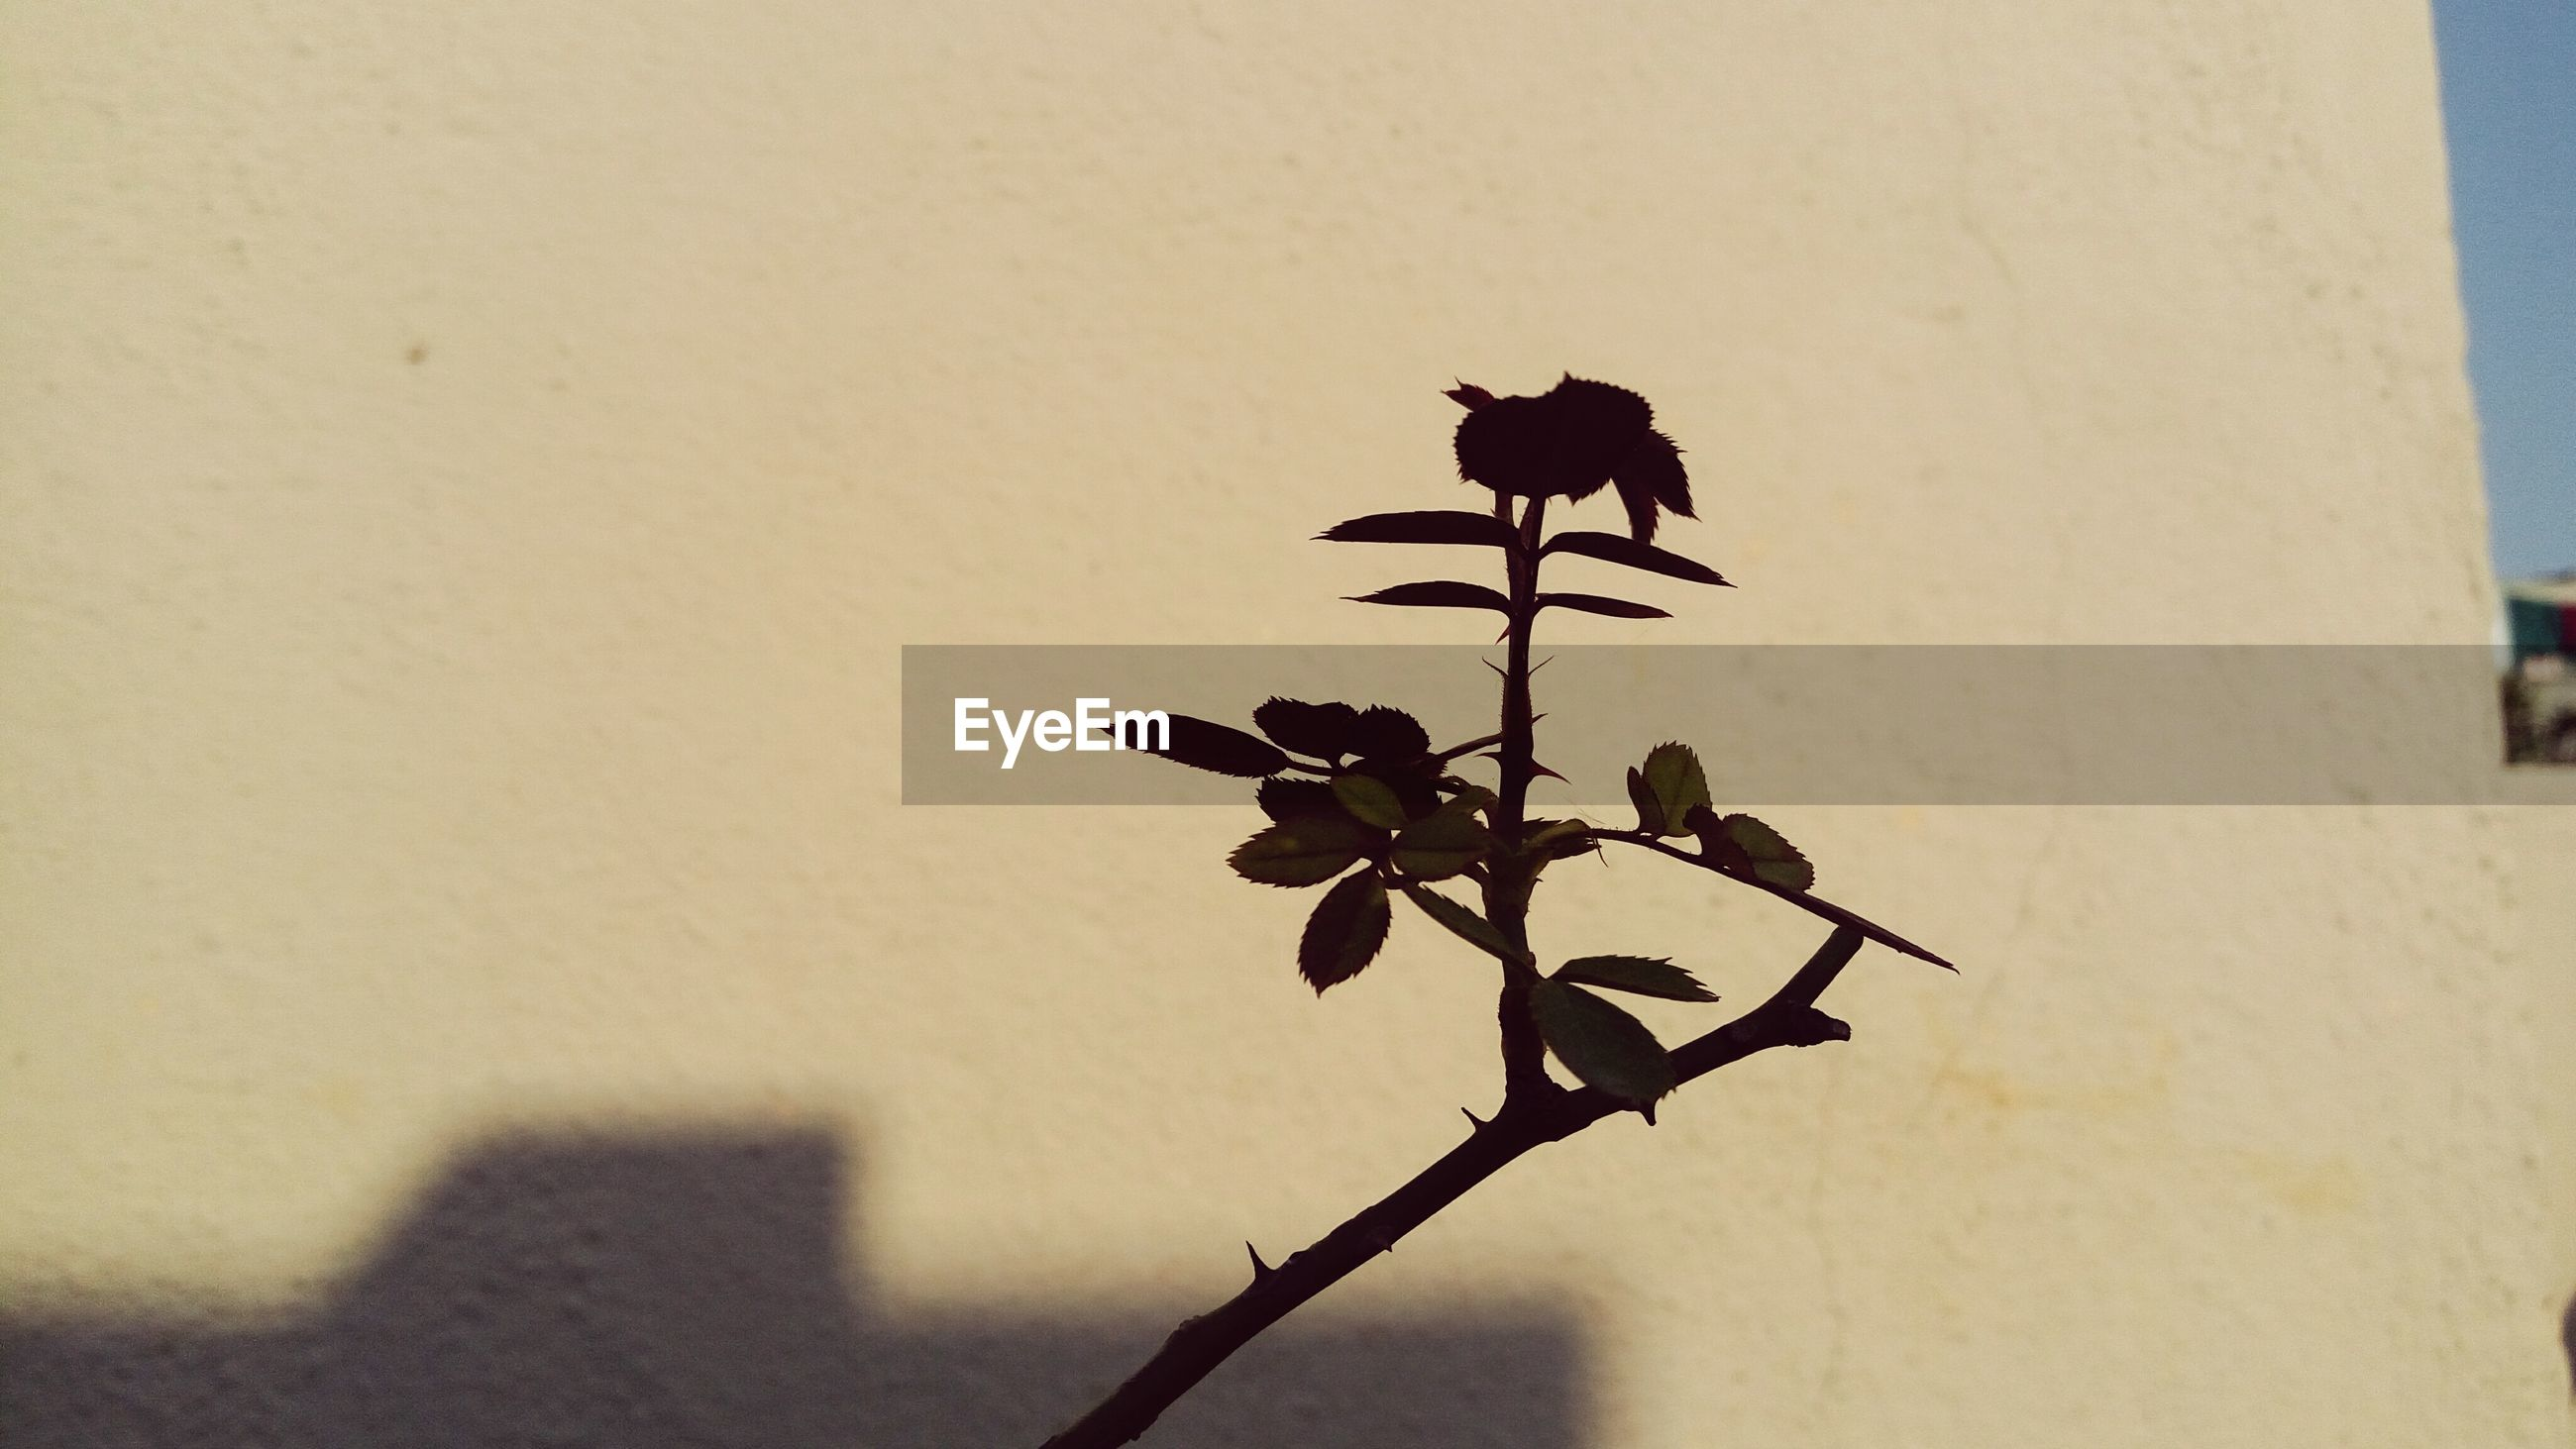 clear sky, wall - building feature, copy space, stem, shadow, nature, branch, no people, day, sunlight, plant, focus on foreground, outdoors, silhouette, close-up, built structure, growth, low angle view, wall, leaf